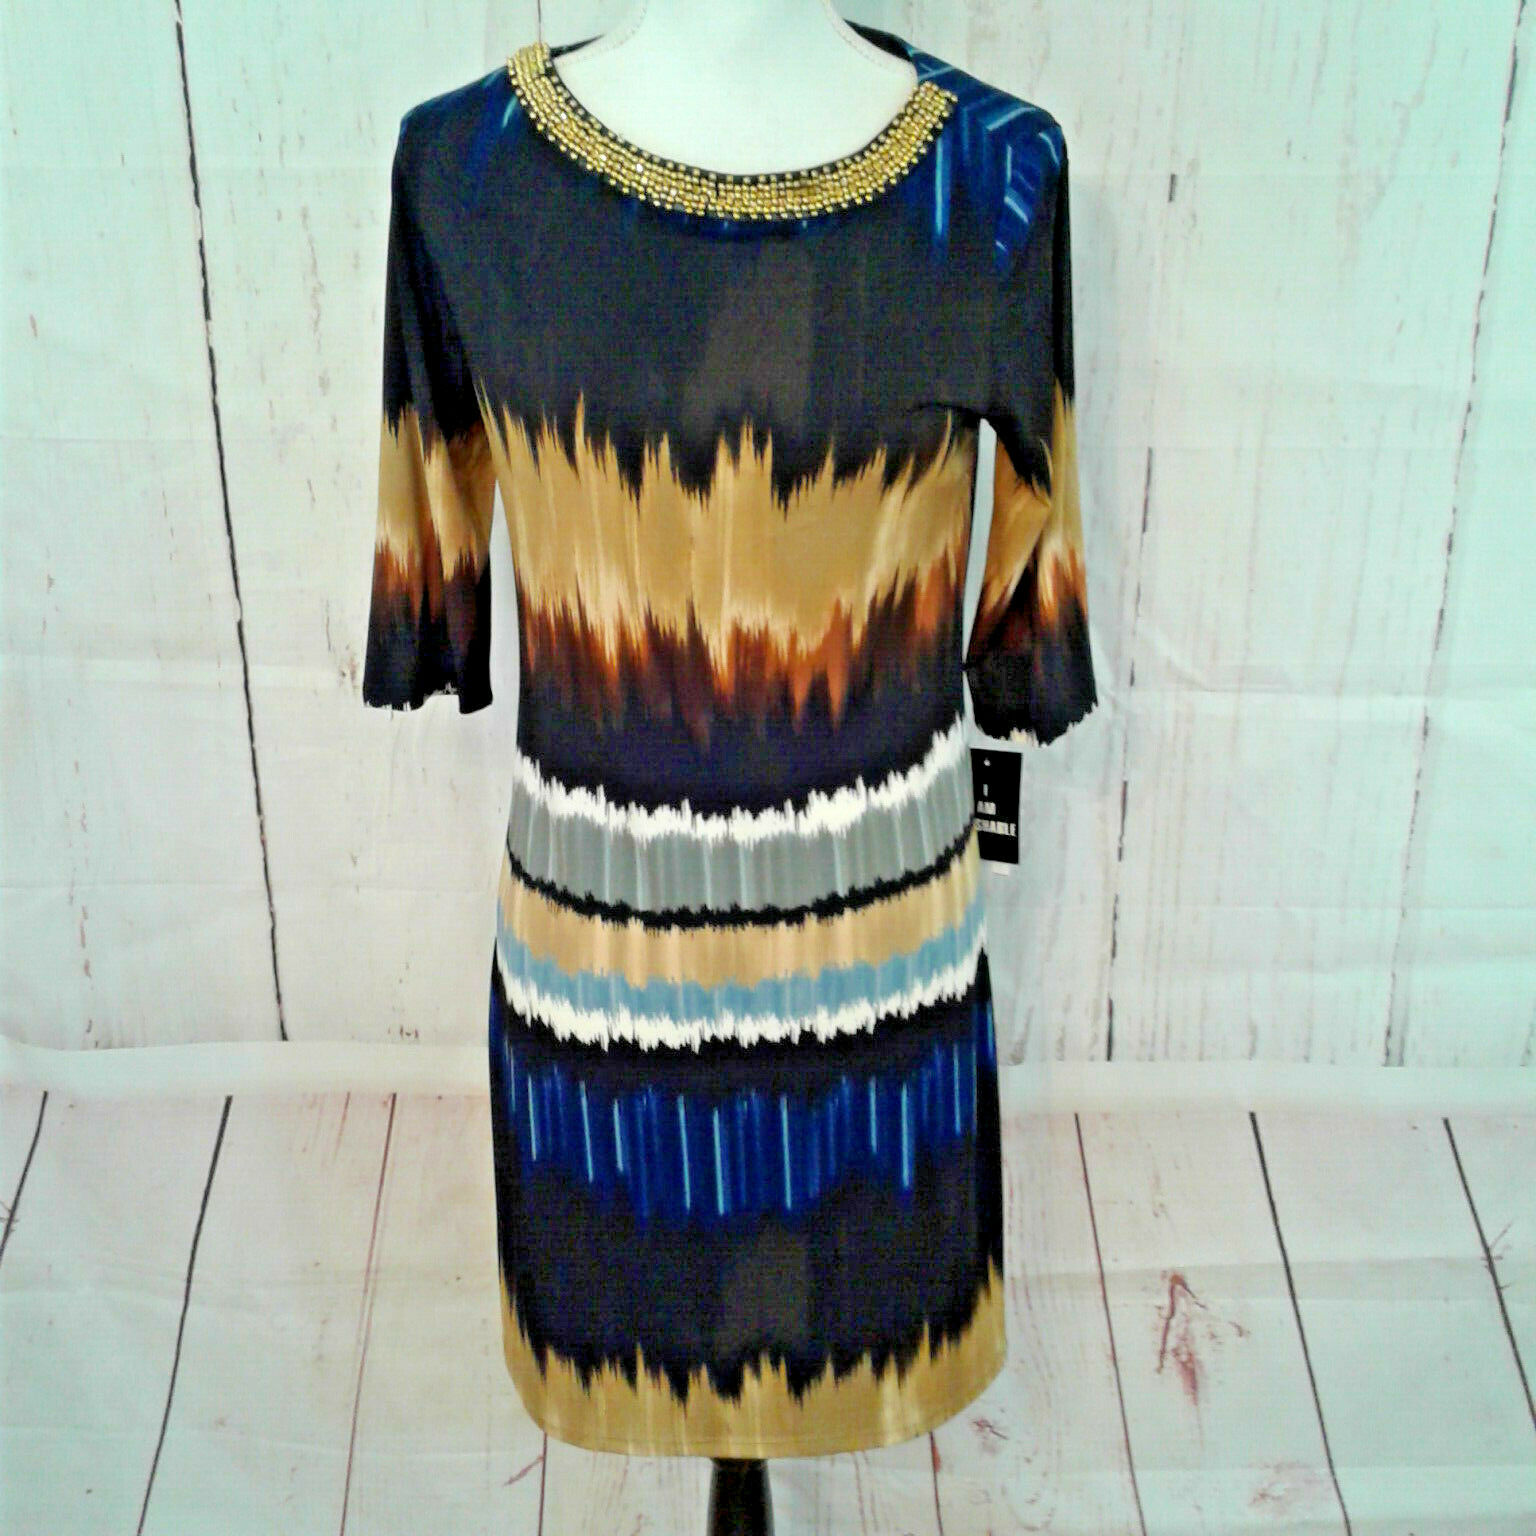 Sharon Darren damen Blau schwarz Gold Ombre Beaded Collar Shift Dress Sz 6 Flaw